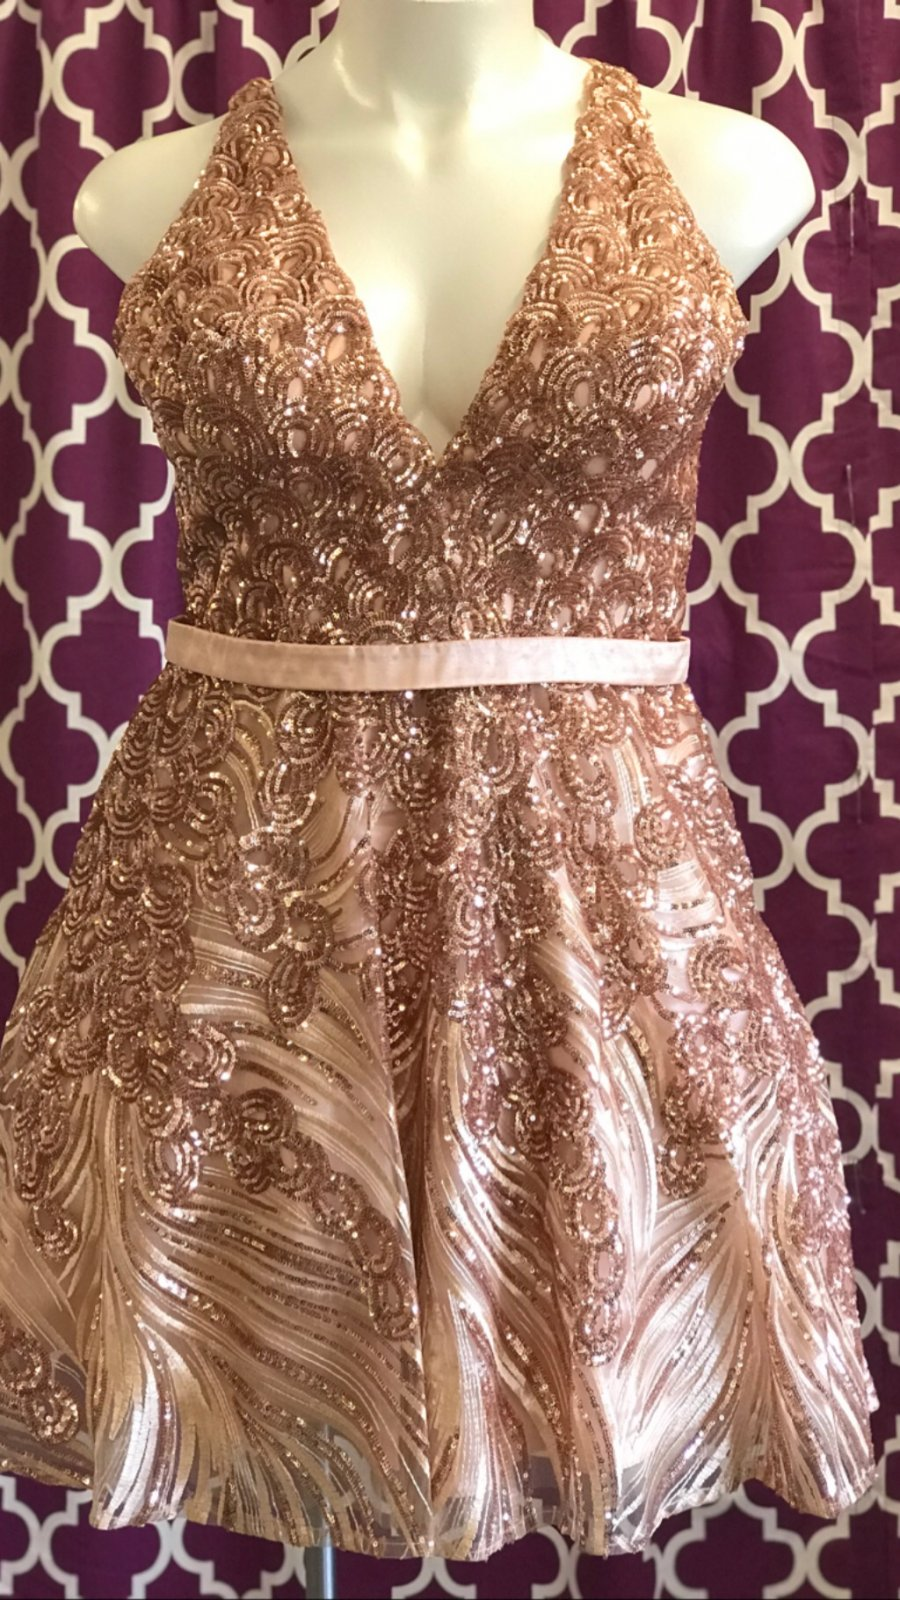 Rose Gold Sweetheart Neckline Homecoming Dress With Keyhole Back